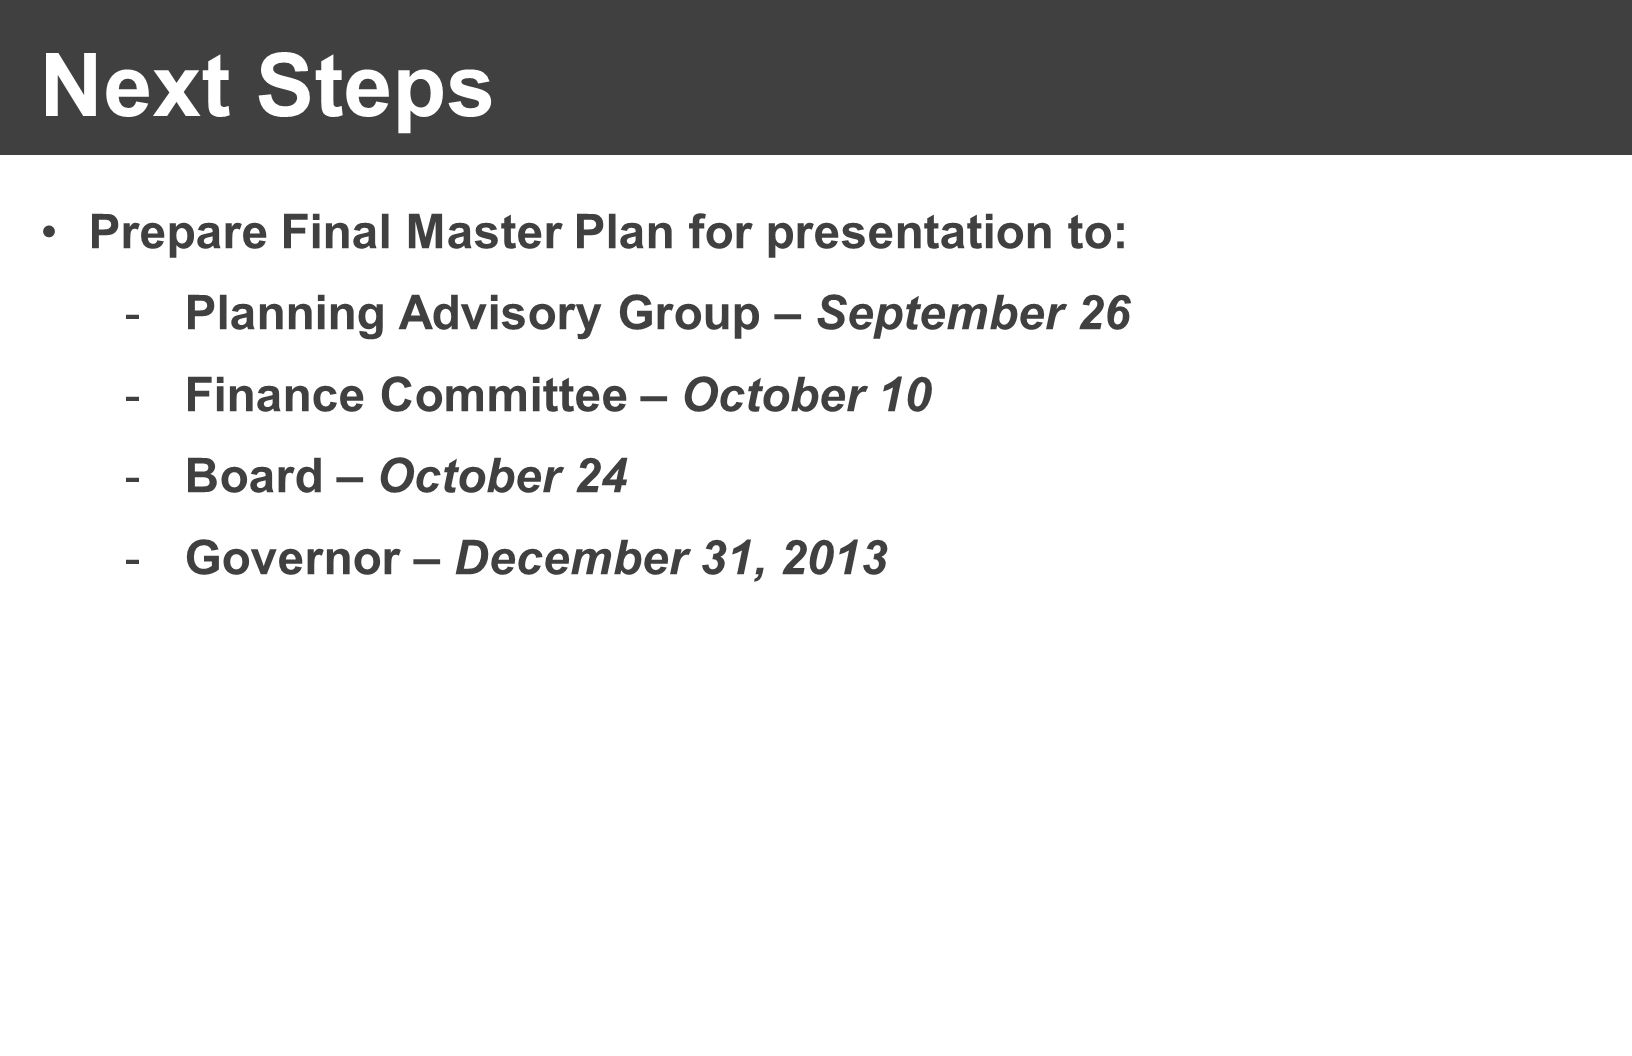 Next Steps Prepare Final Master Plan for presentation to: -Planning Advisory Group – September 26 -Finance Committee – October 10 -Board – October 24